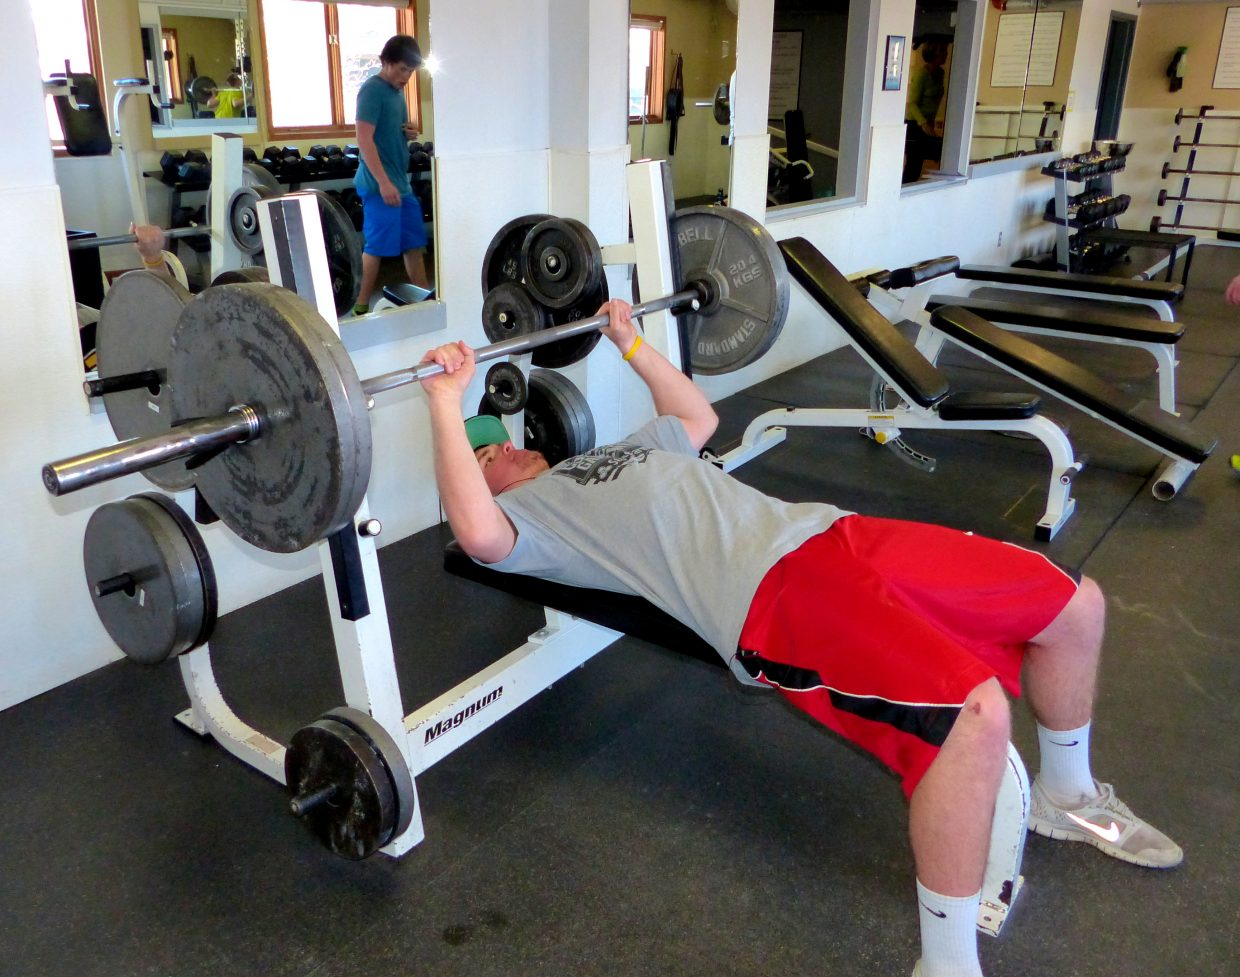 We're always happy when college kids are home for spring break. John Wharton goes to CU in Boulder and spent some time in the free weight room of the Fitness Center at Old Town Hot Springs. Submitted by: Shannon Lukens